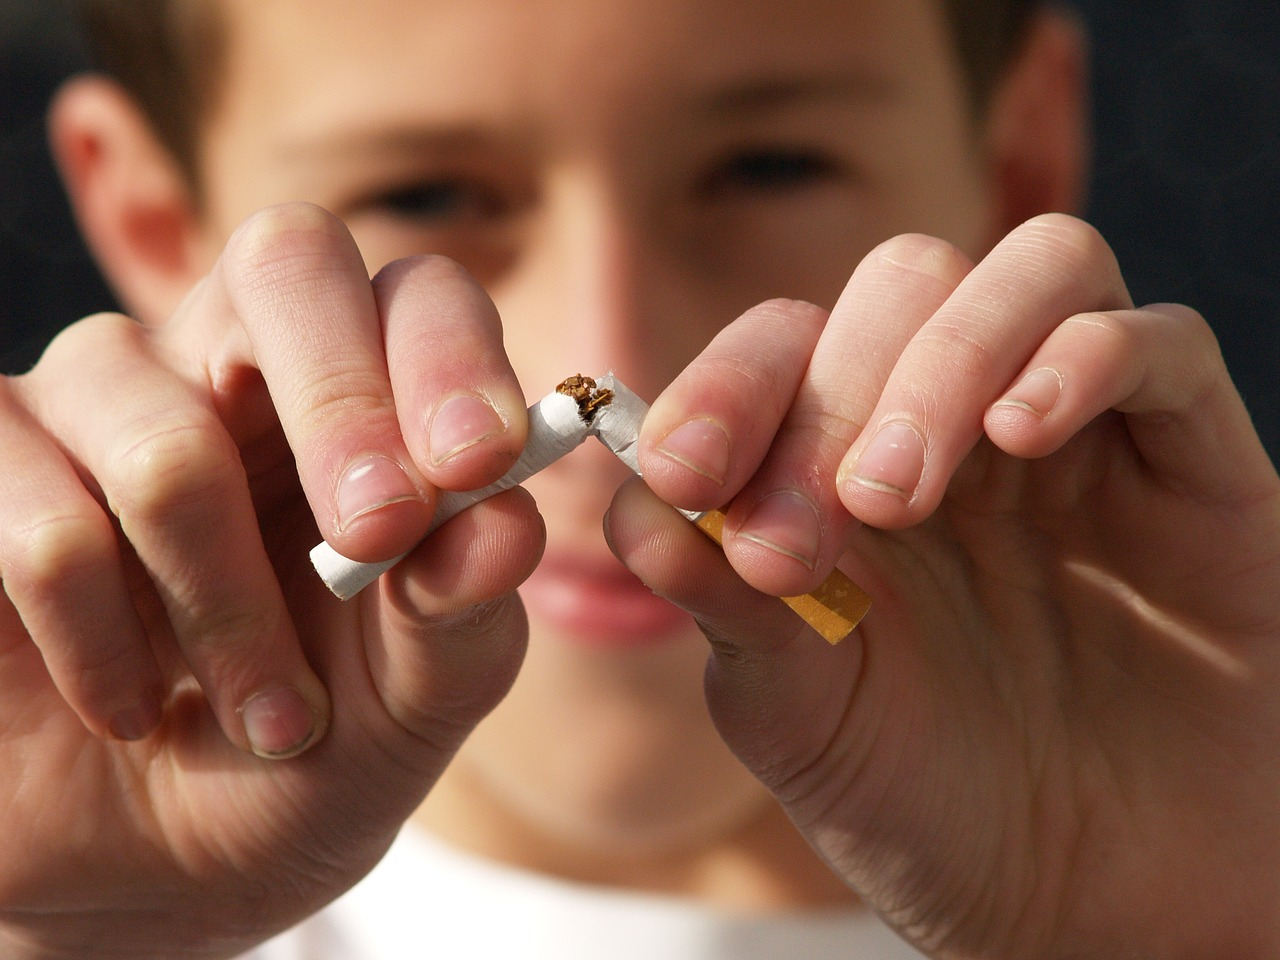 A young boy breaking a cigarette stick.